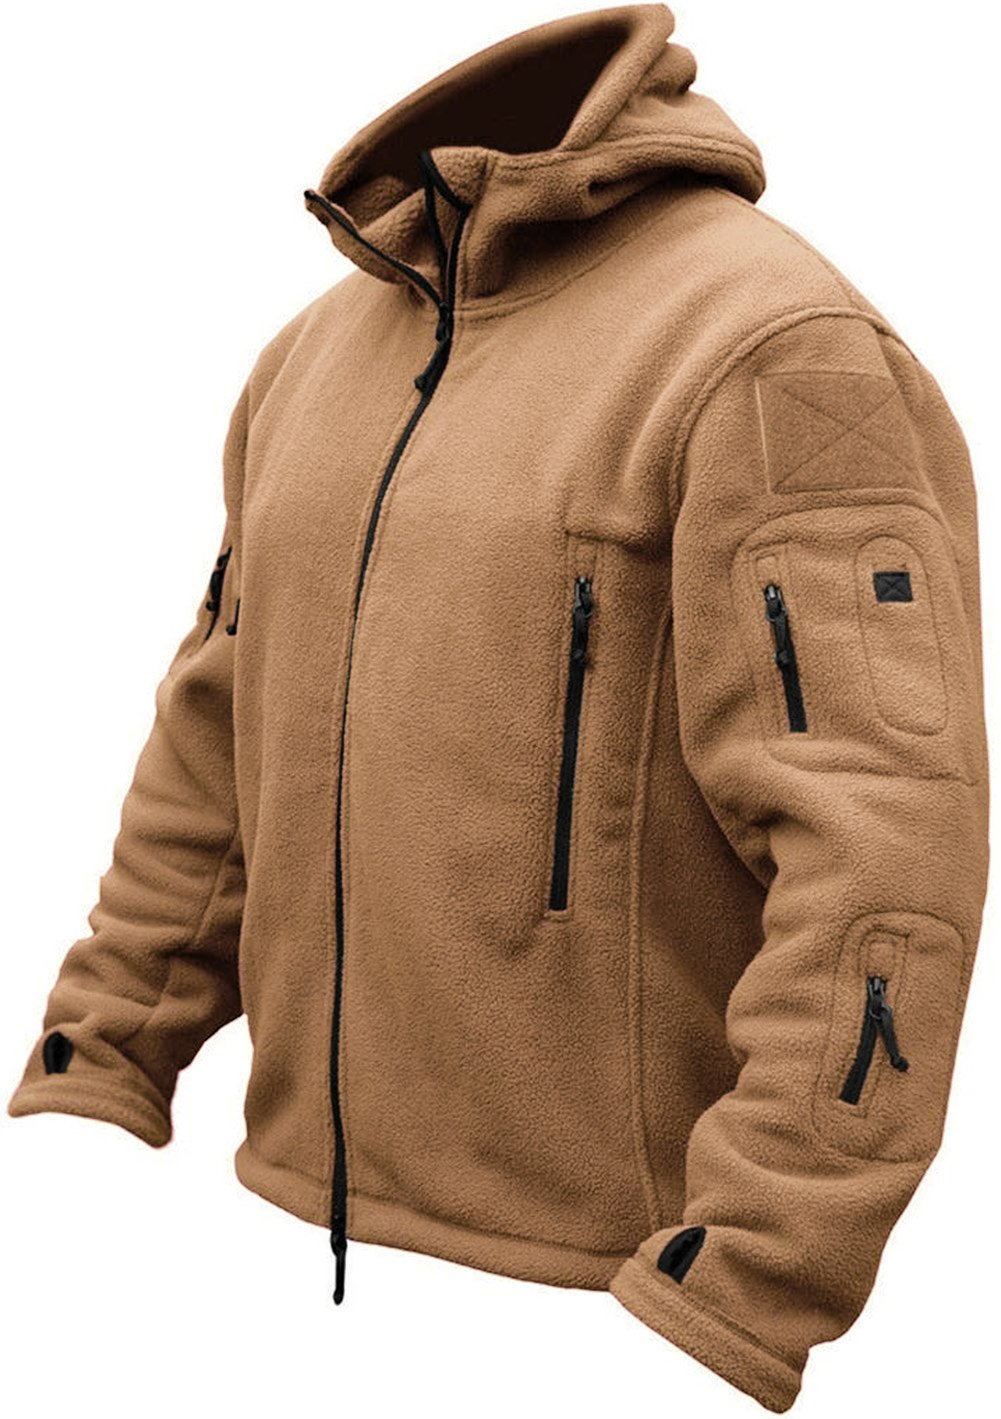 07bd8271a9 TACVASEN Antivento Giacca in Pile da Uomo Outdoor Militare Caldo Cappotto -  Face Shop